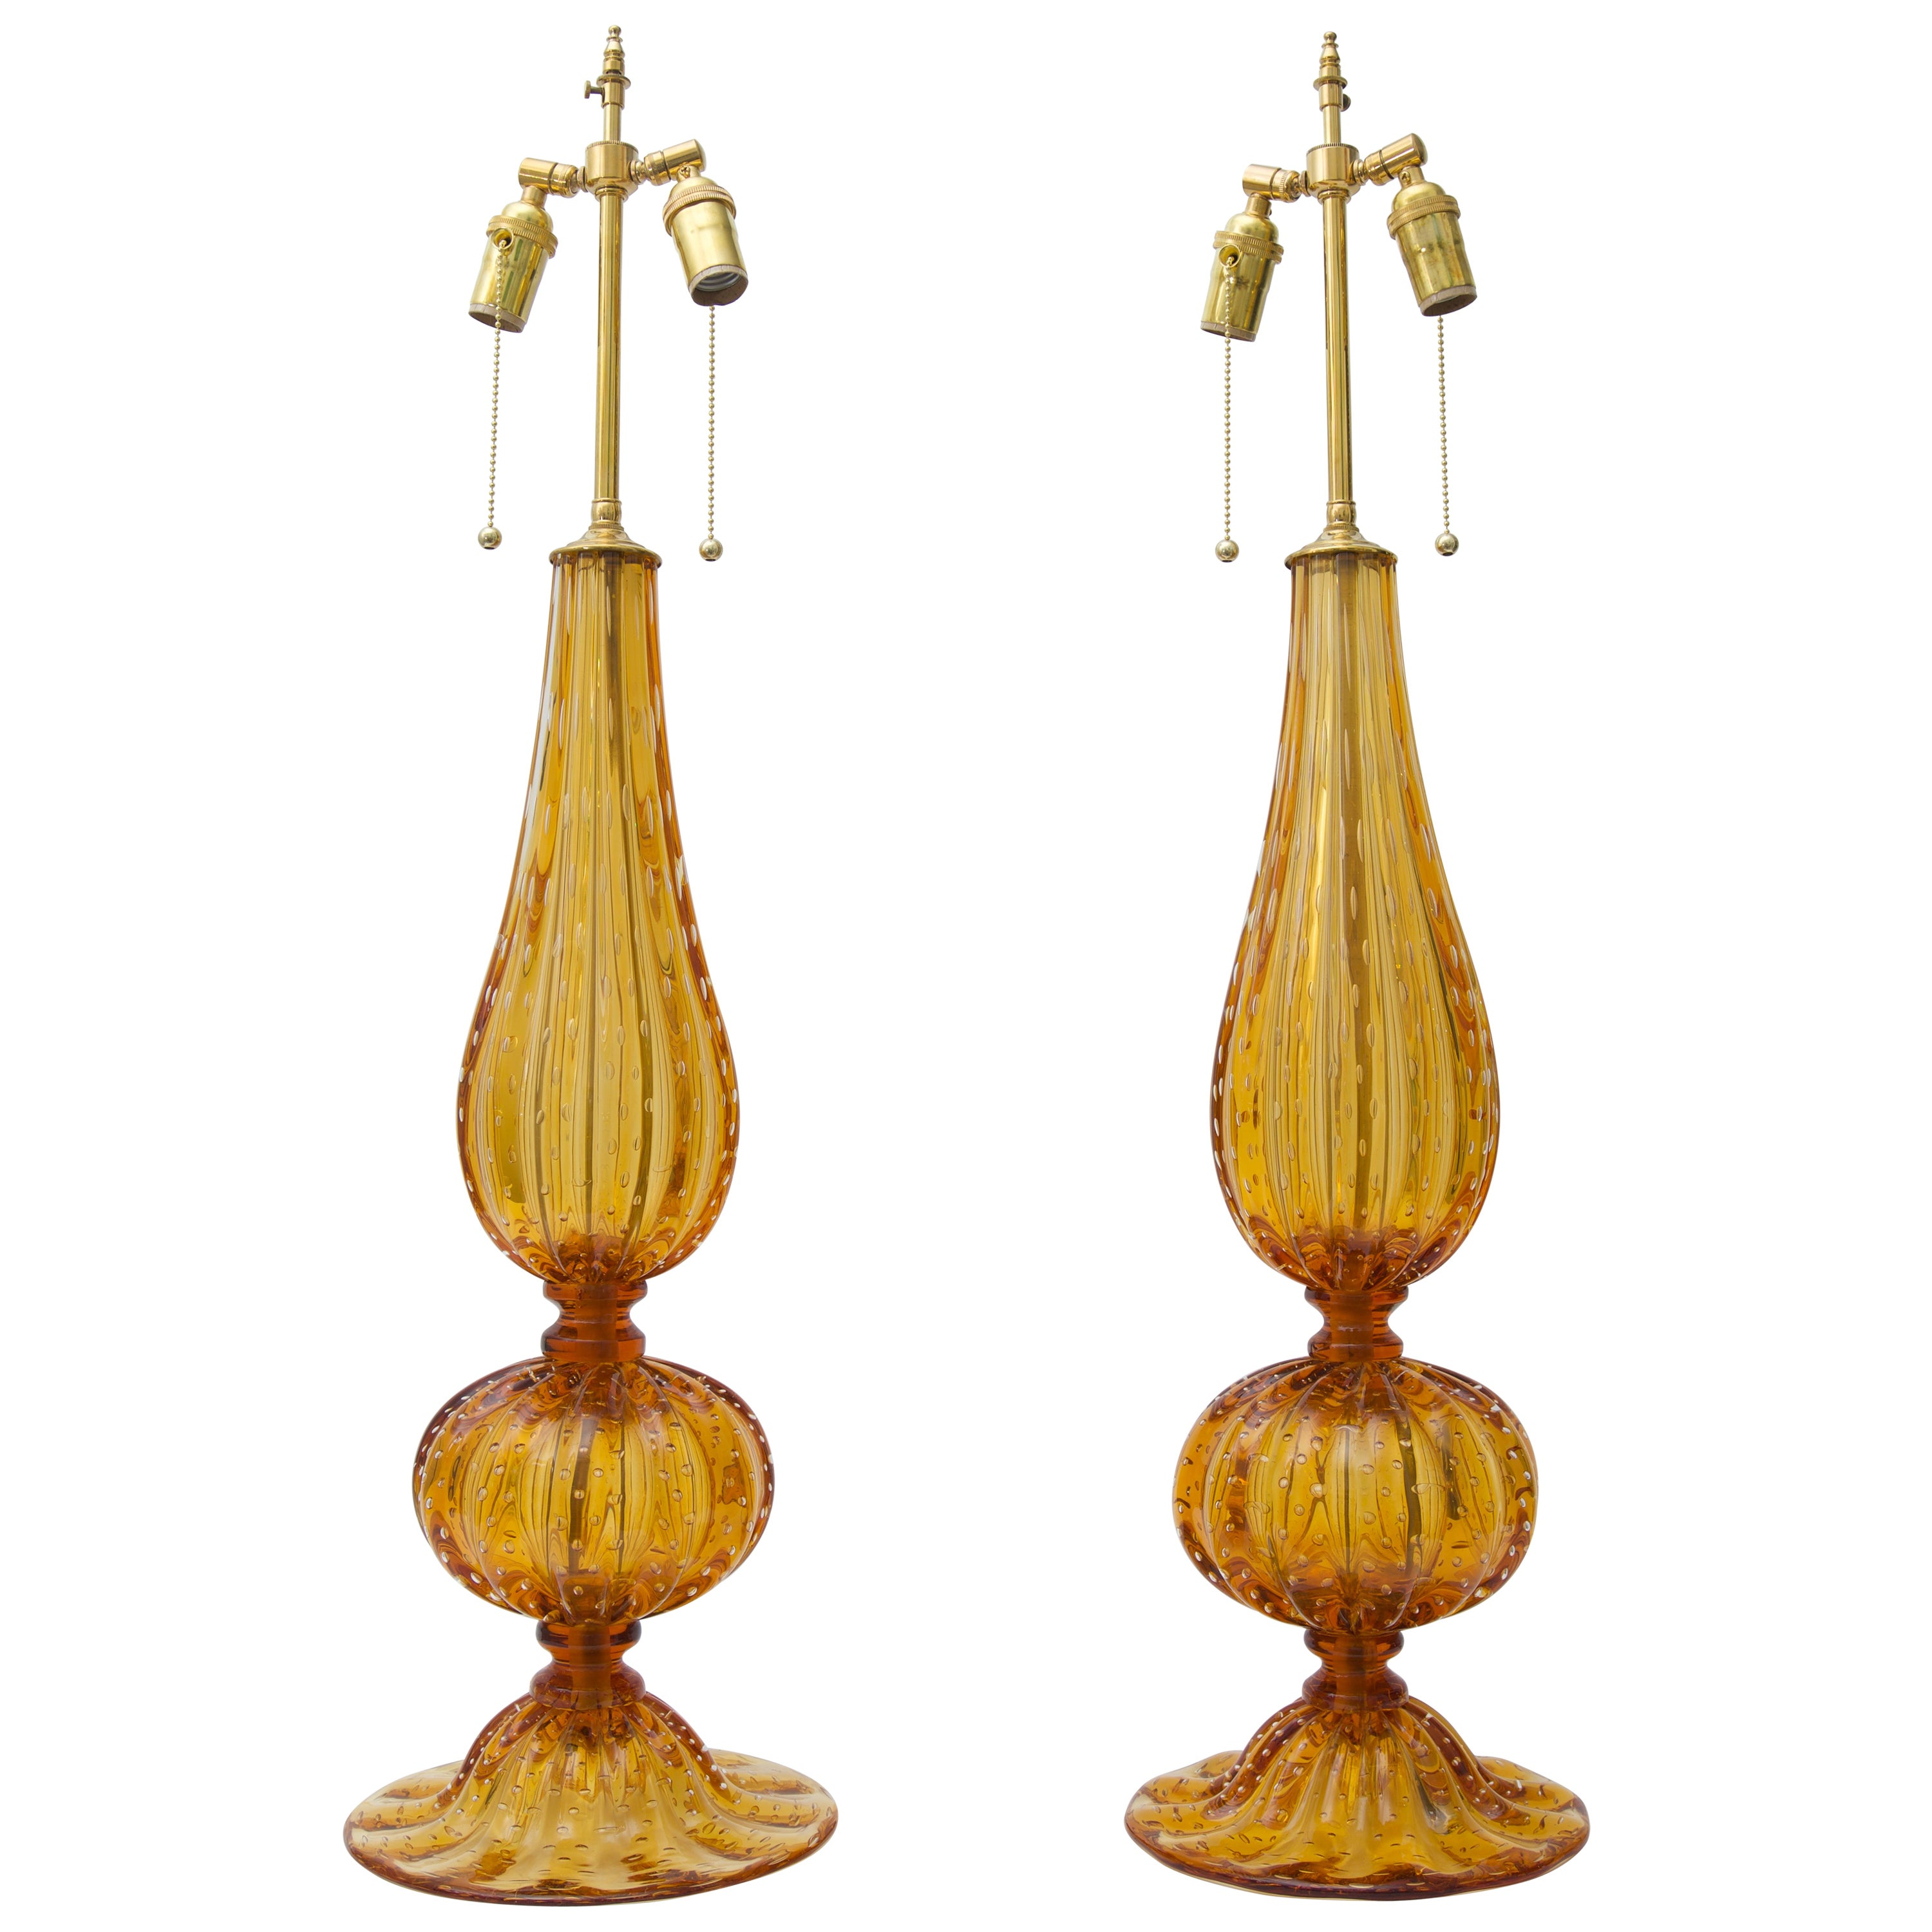 Pair of Golden Amber Colored Murano Glass Table Lamps